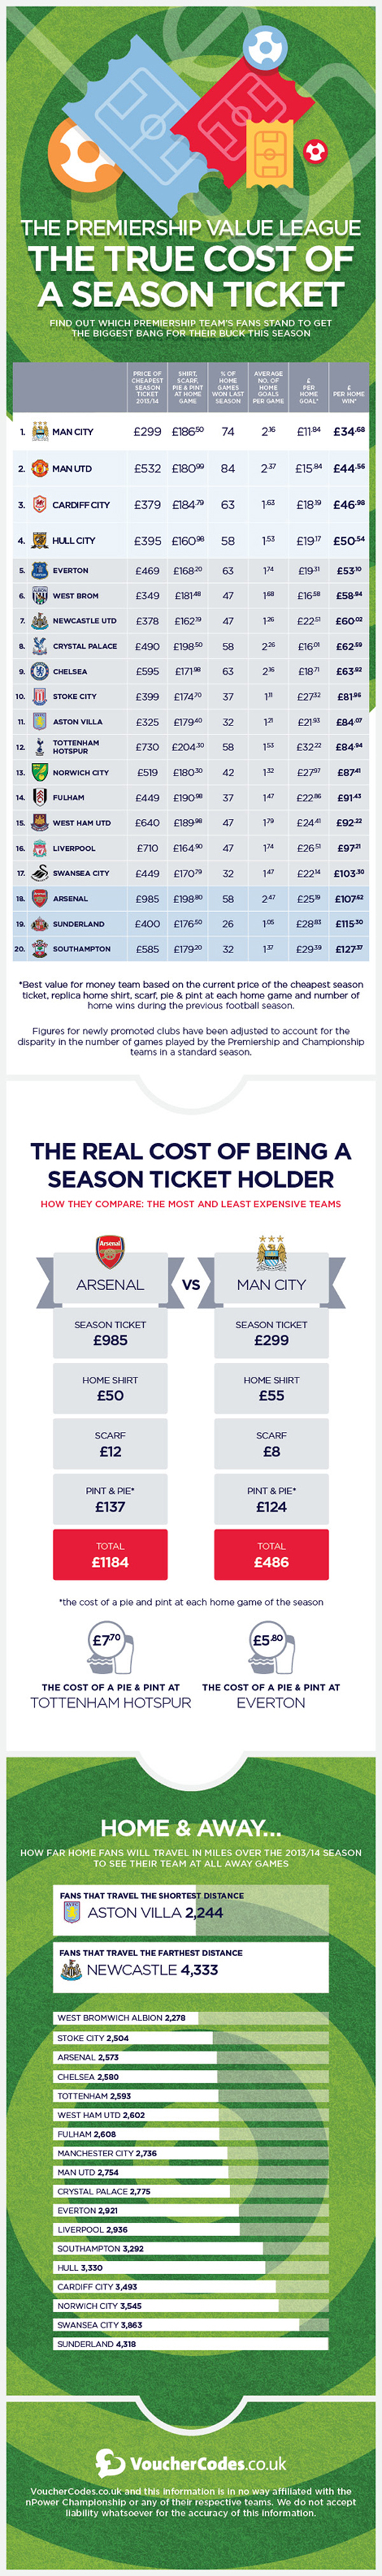 Premier League Season Ticket Infographic